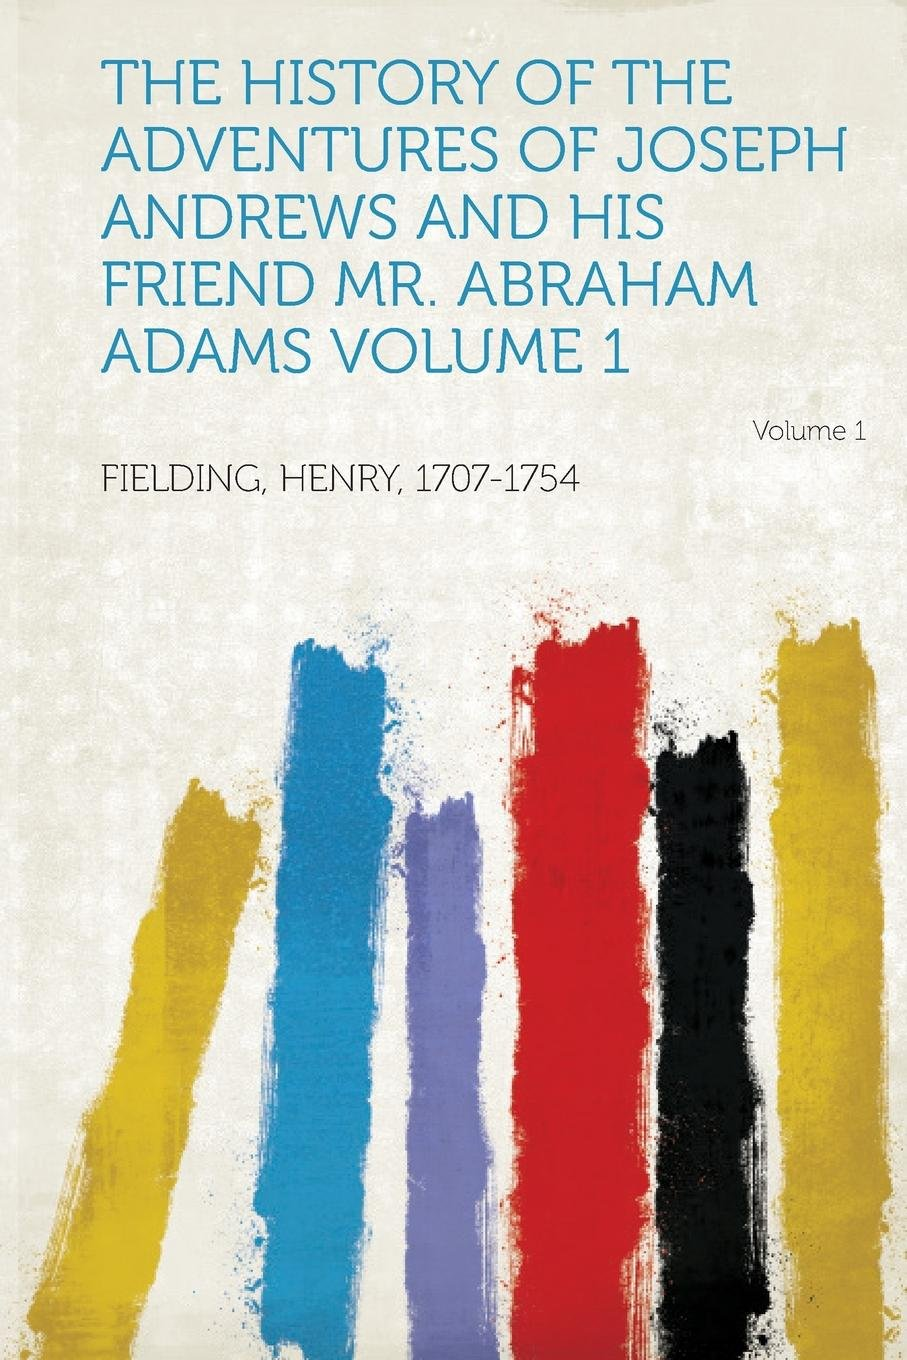 The History of the Adventures of Joseph Andrews and His Friend Mr. Abraham Adams Volume 1 pdf